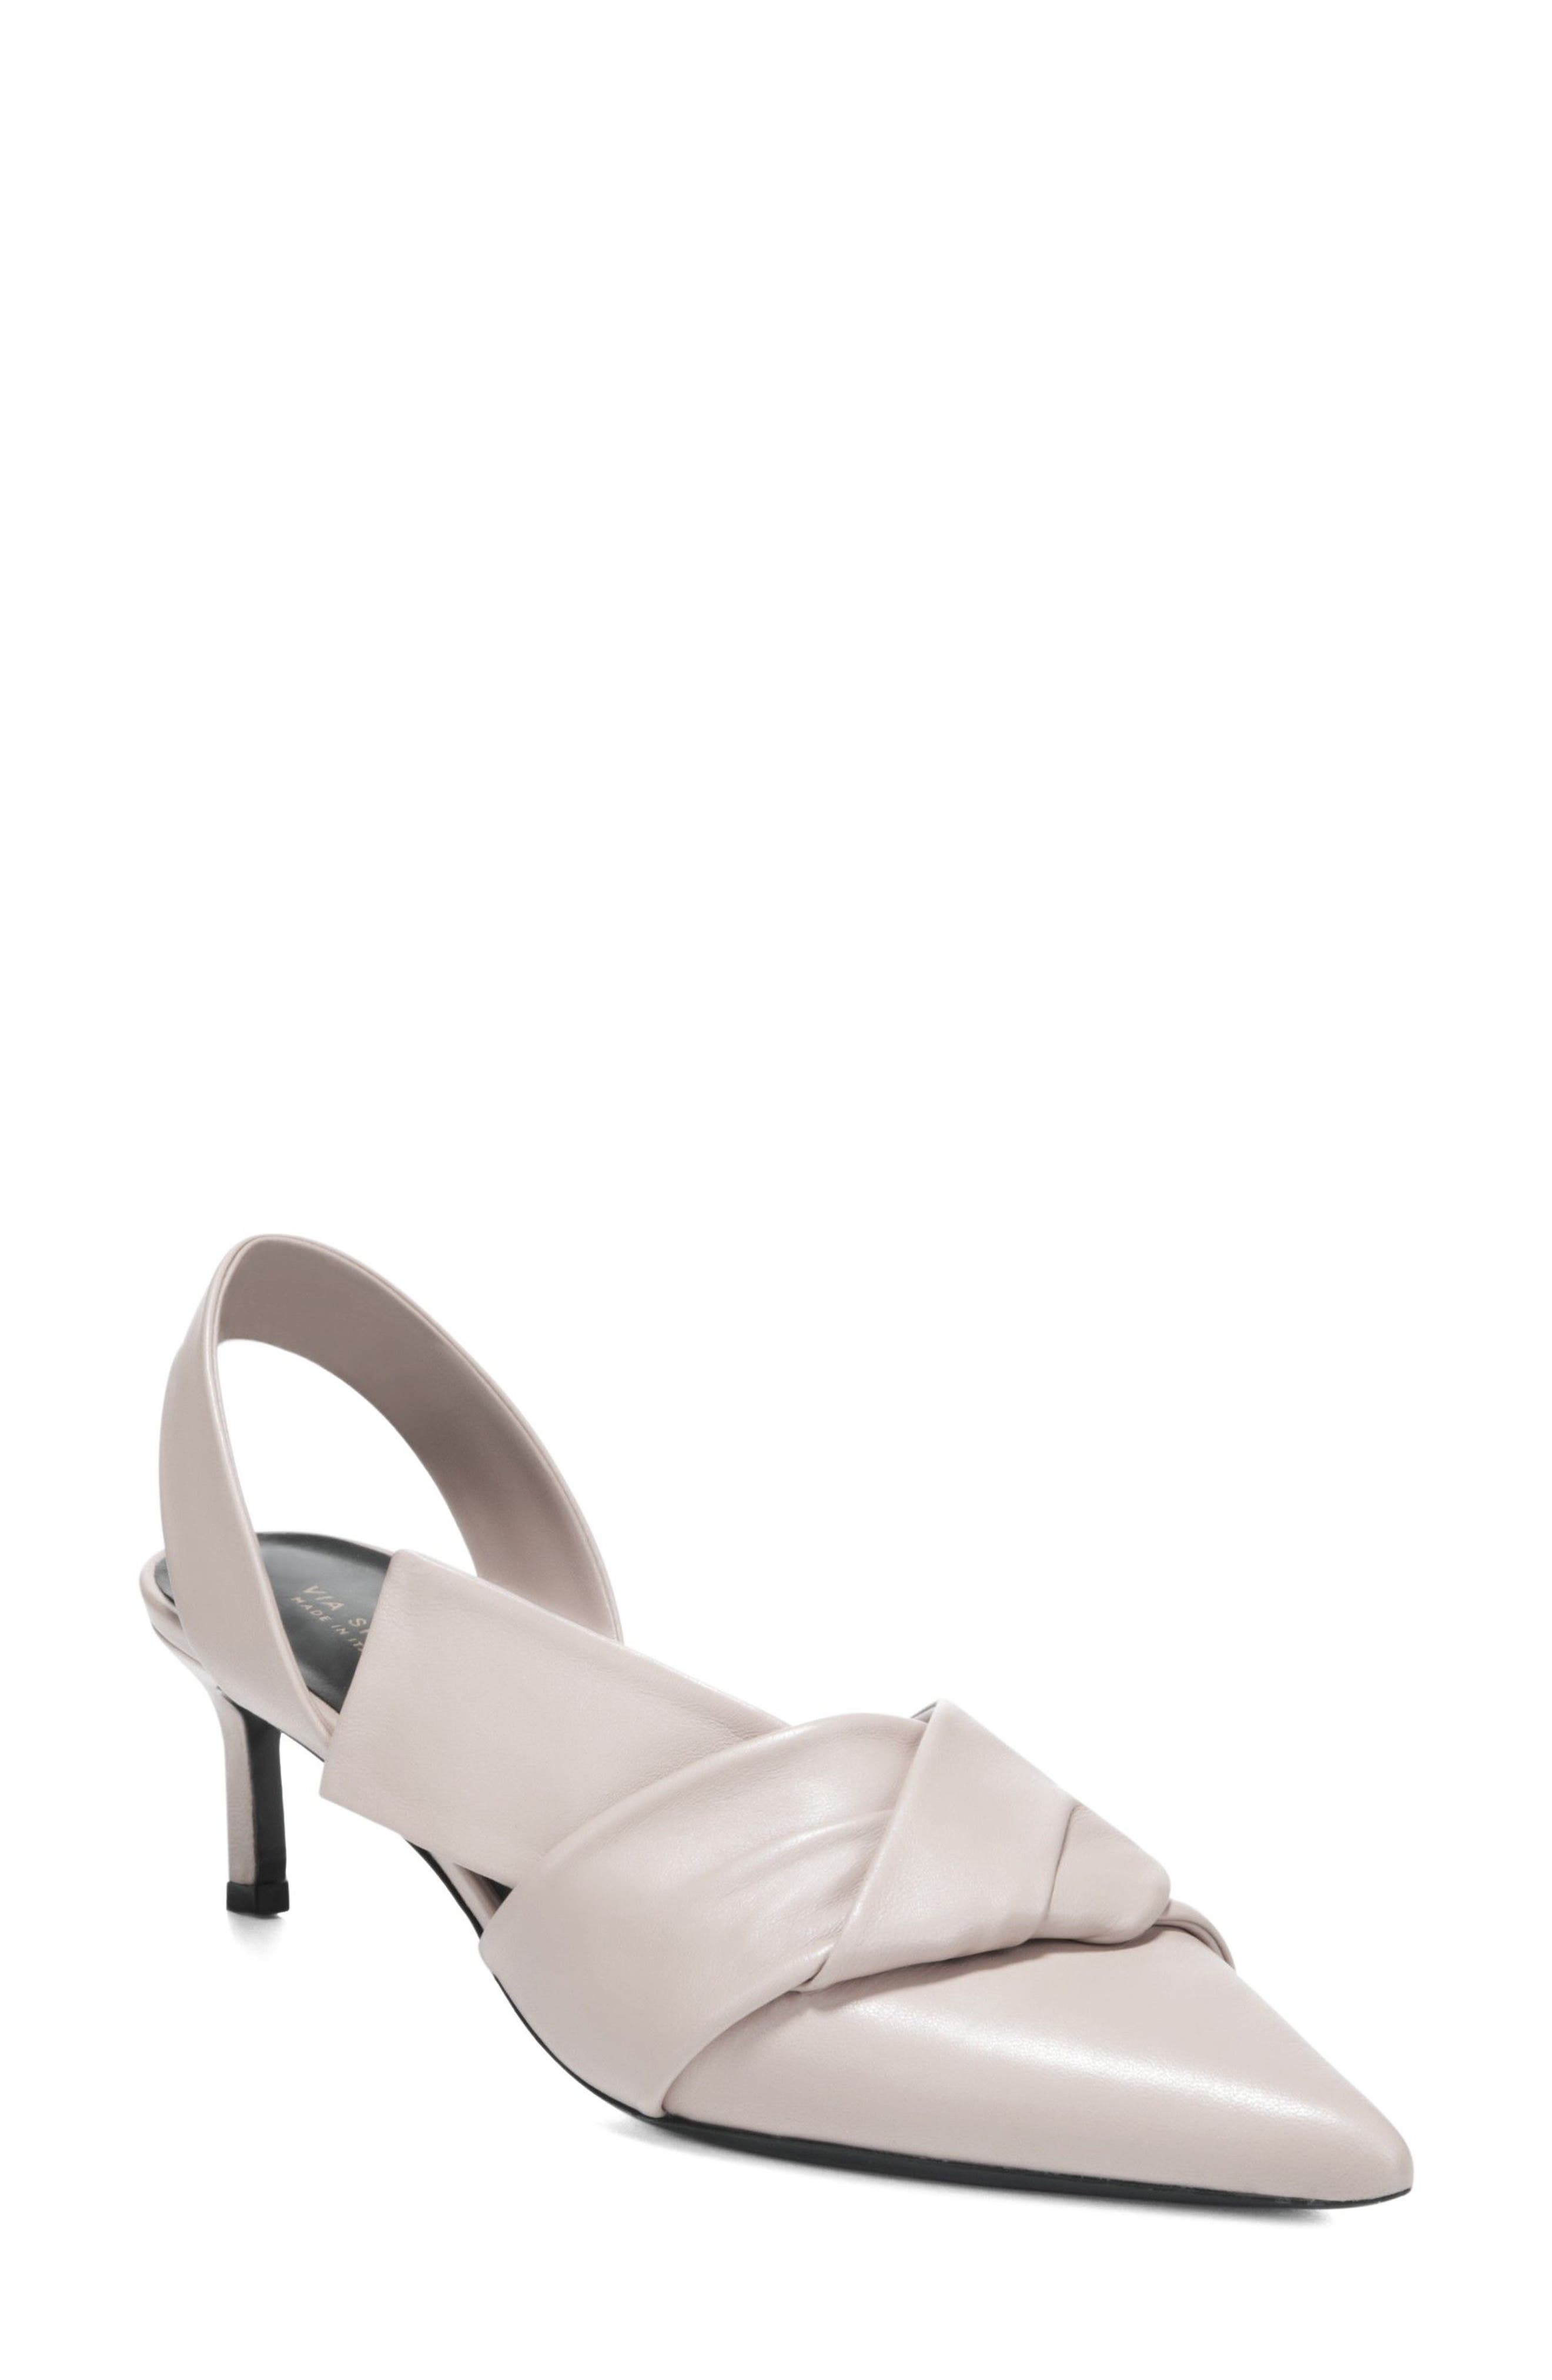 Via Spiga Women's Elisha Pointy Toe Slingback Pump